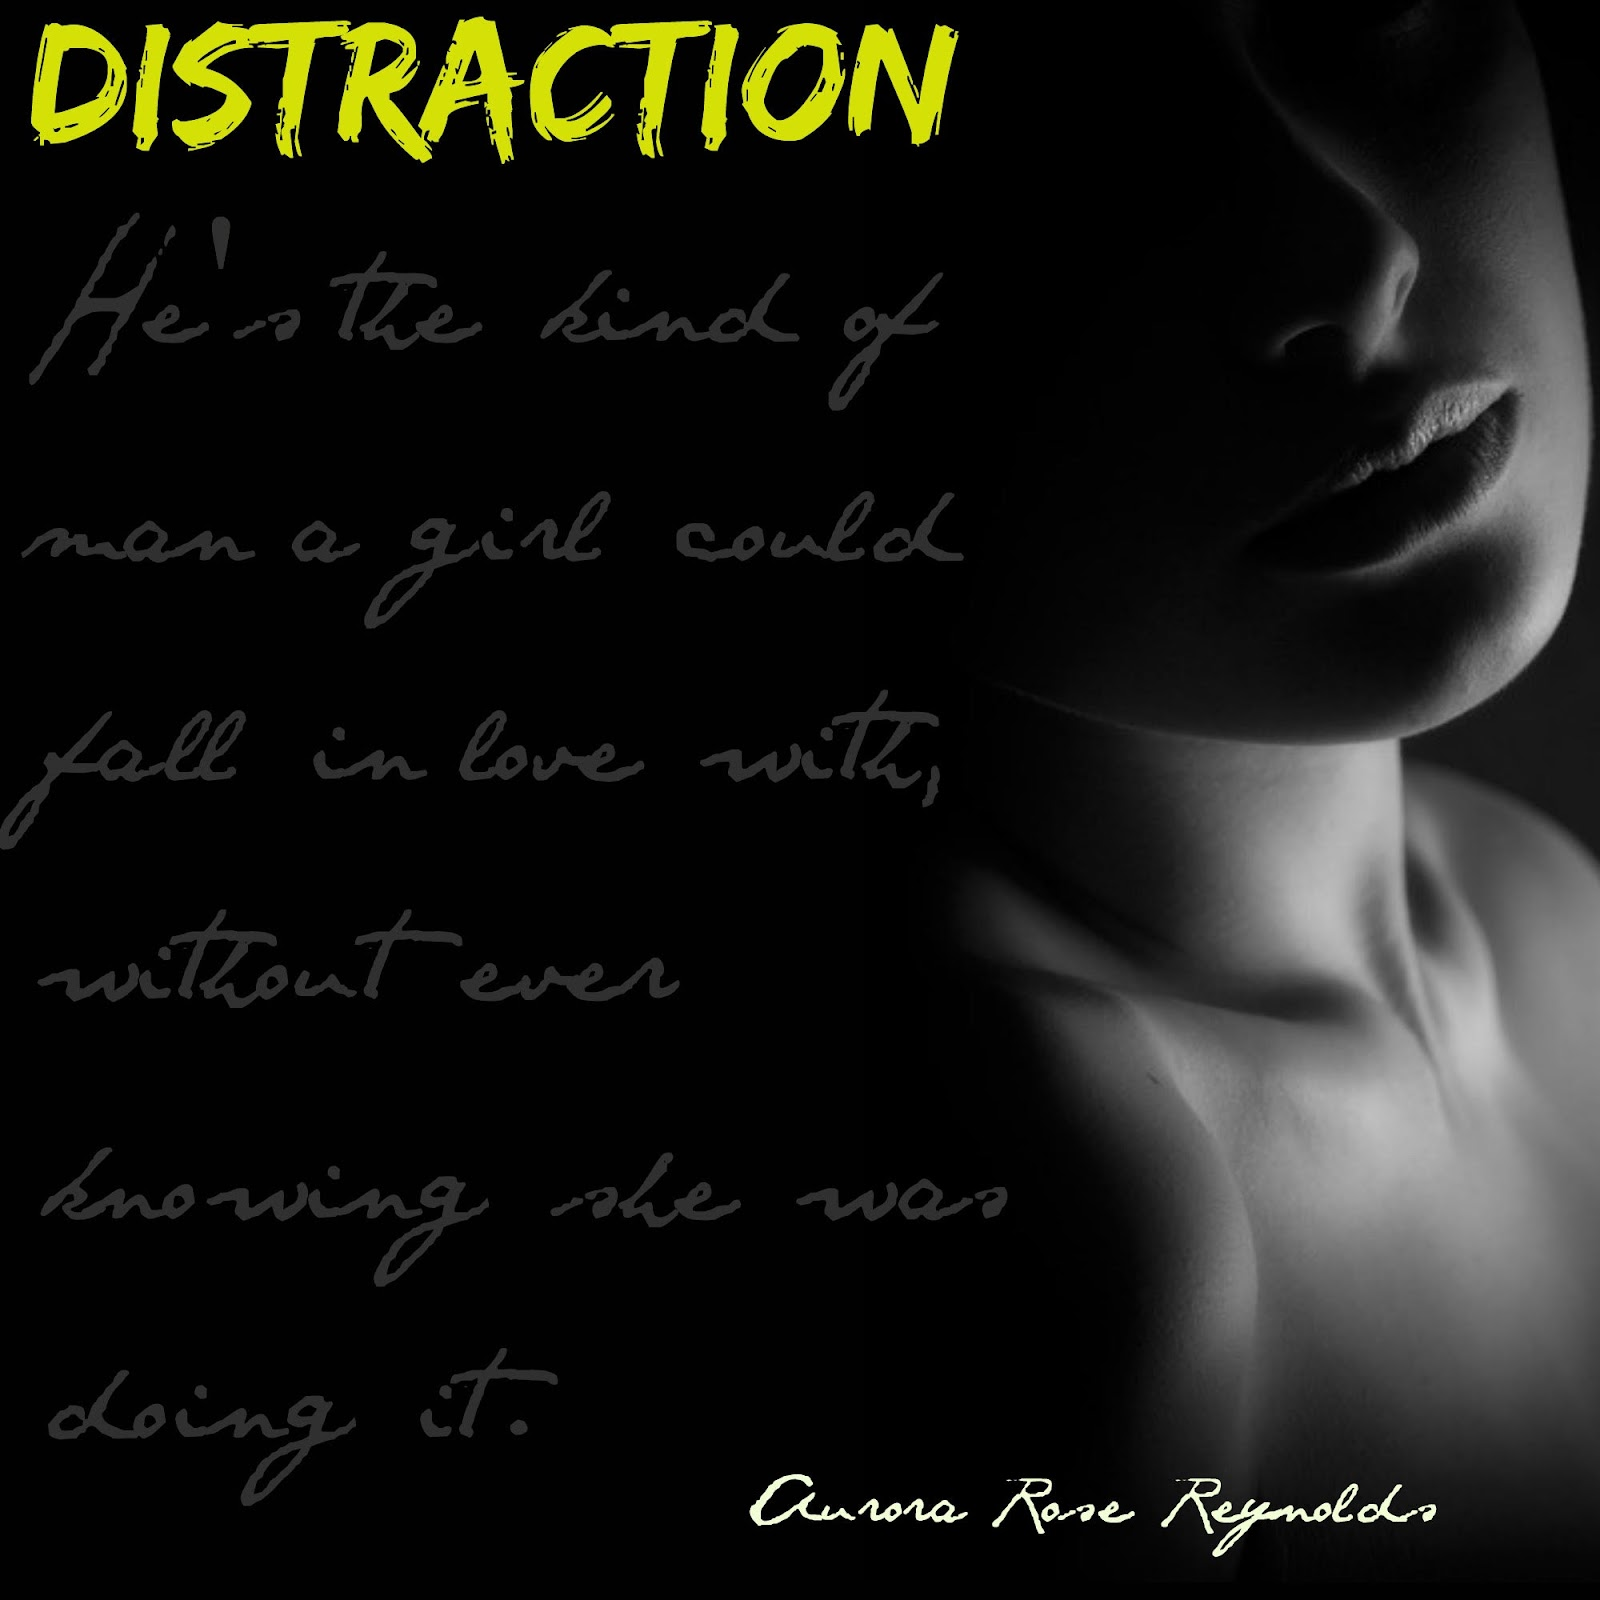 distraction teaser 3.jpg